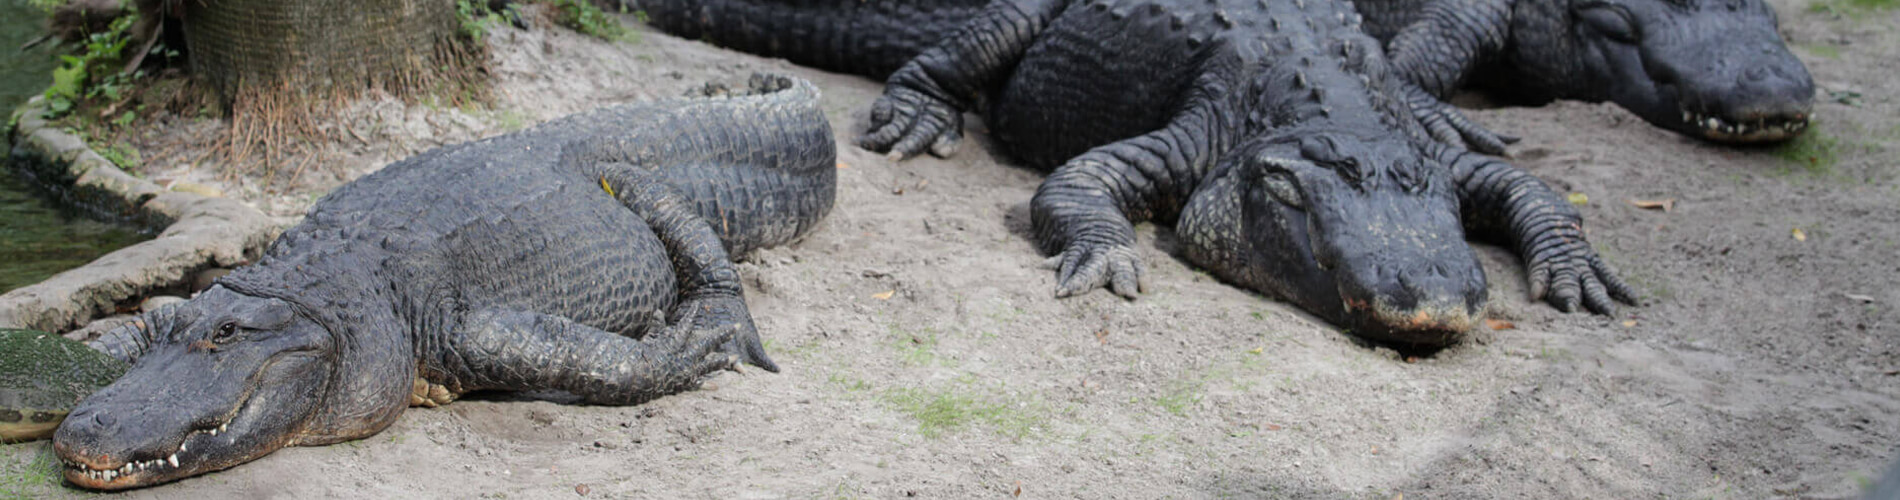 Alligators and Other Reptiles at Busch Gardens Tampa Bay